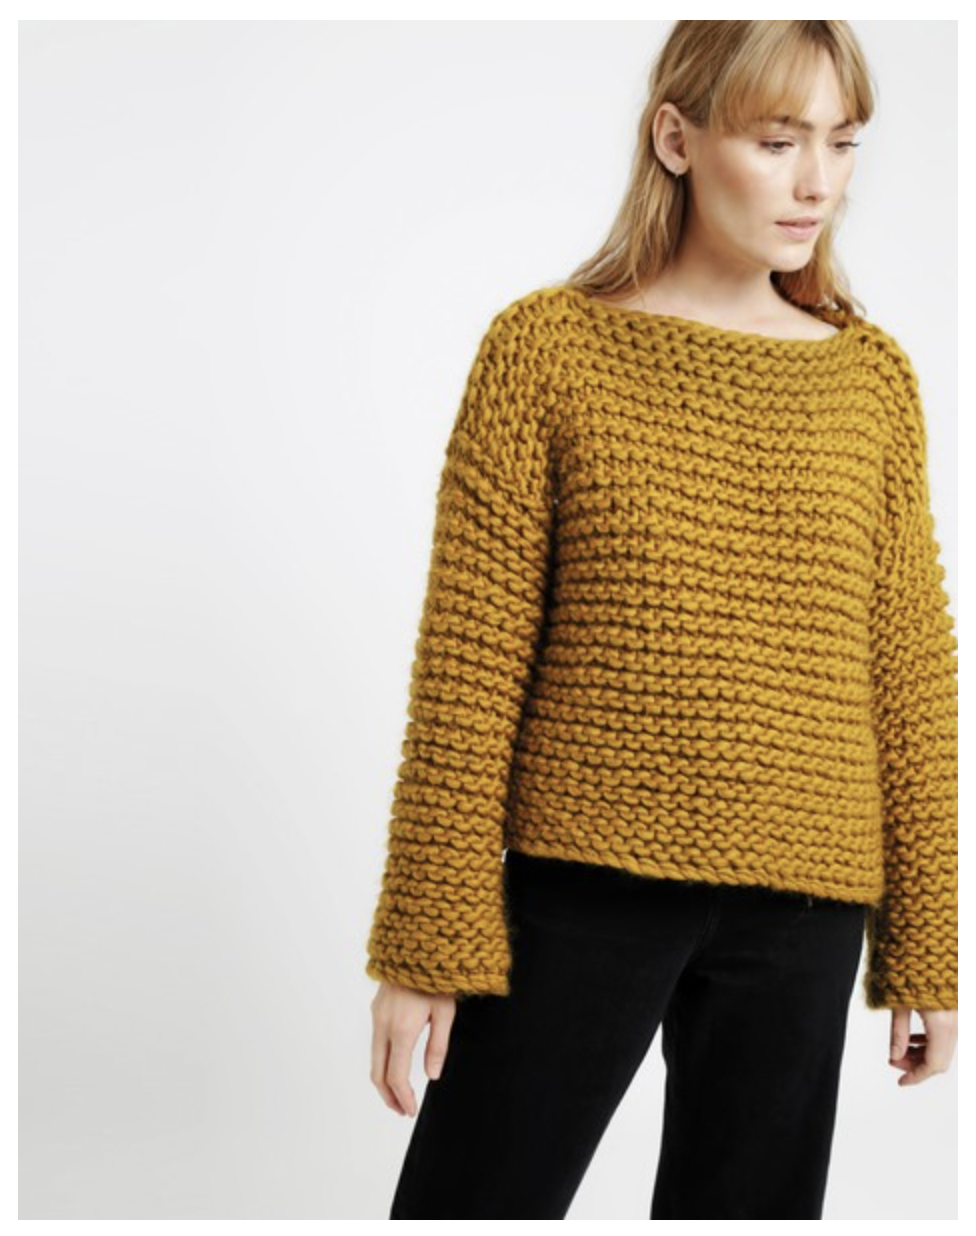 beginner-knit-sweater-kit